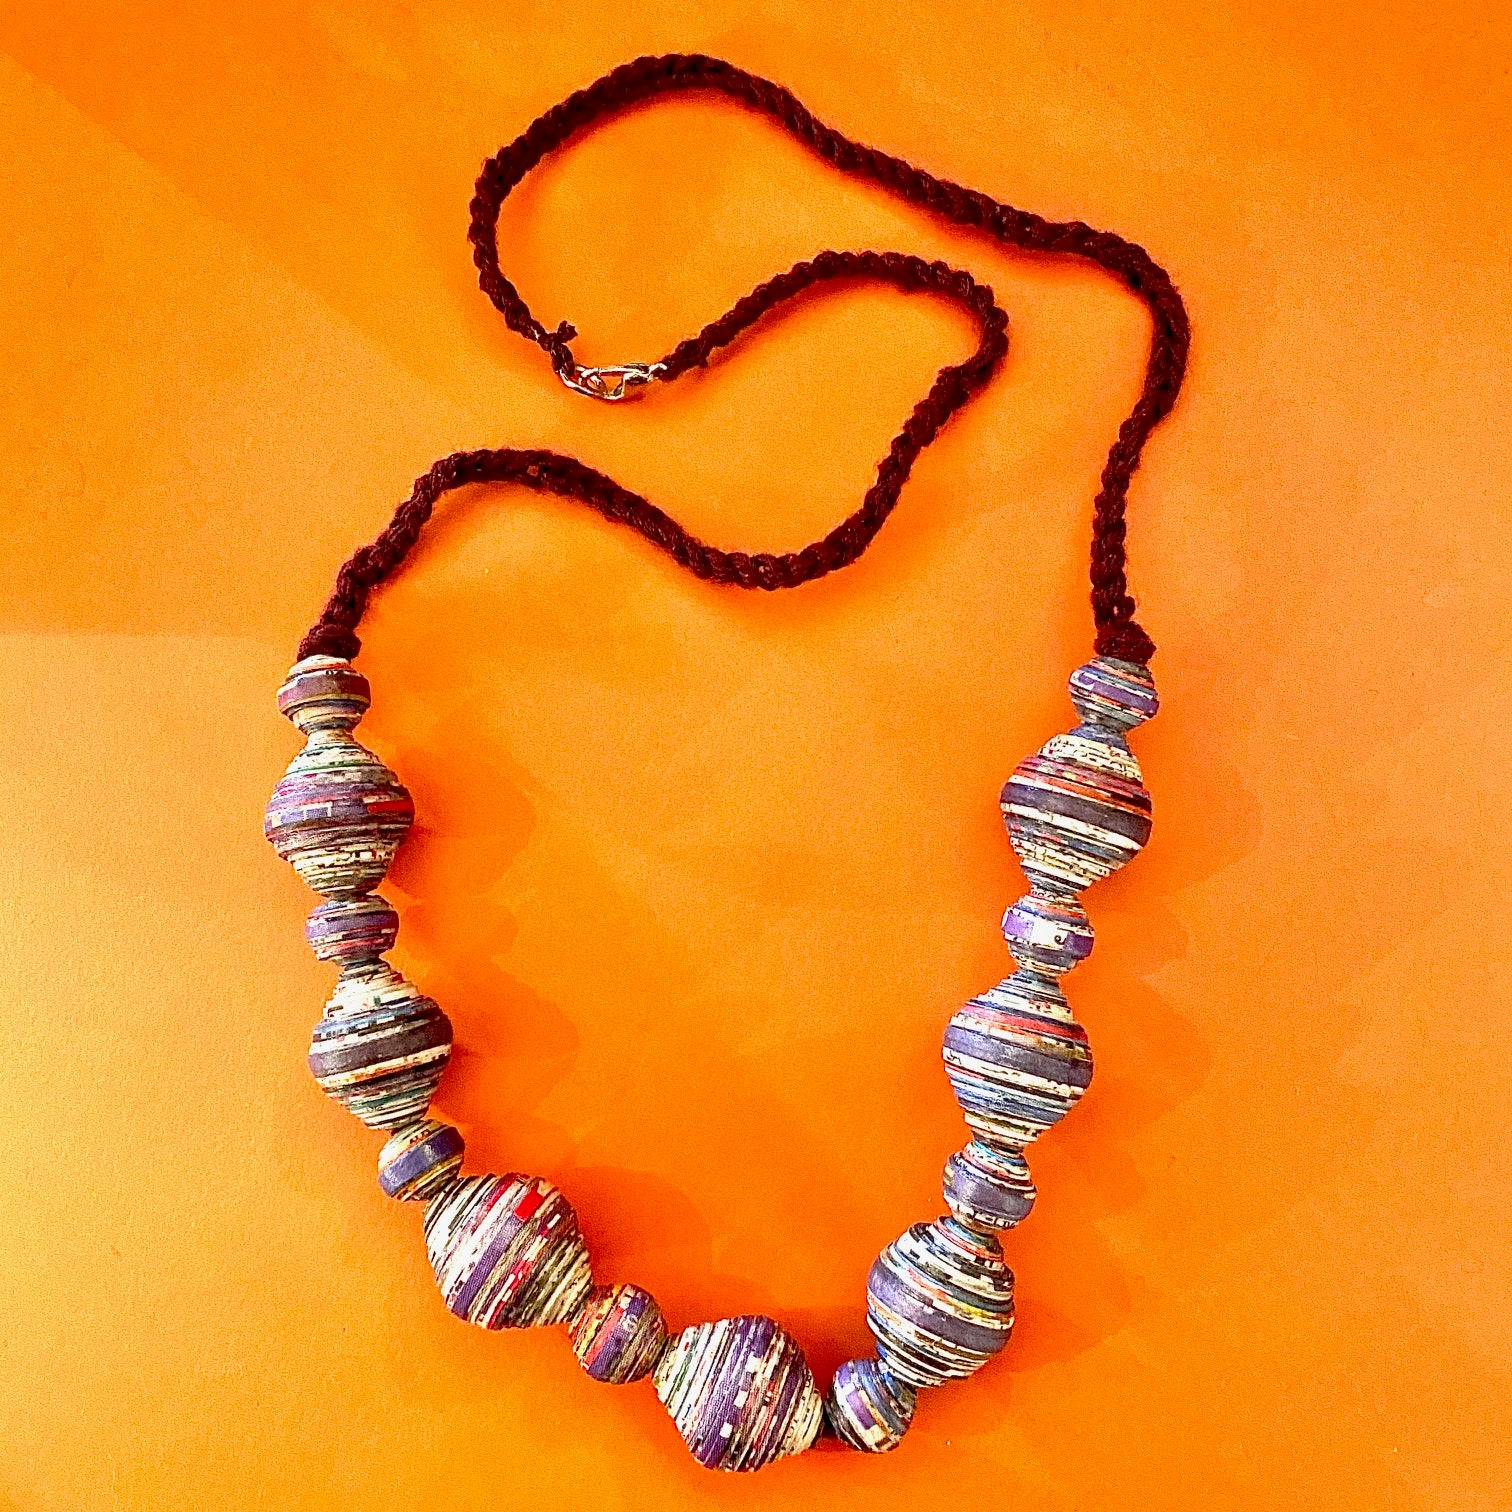 Upcycled Paper Necklaces from the Lao Women's Center